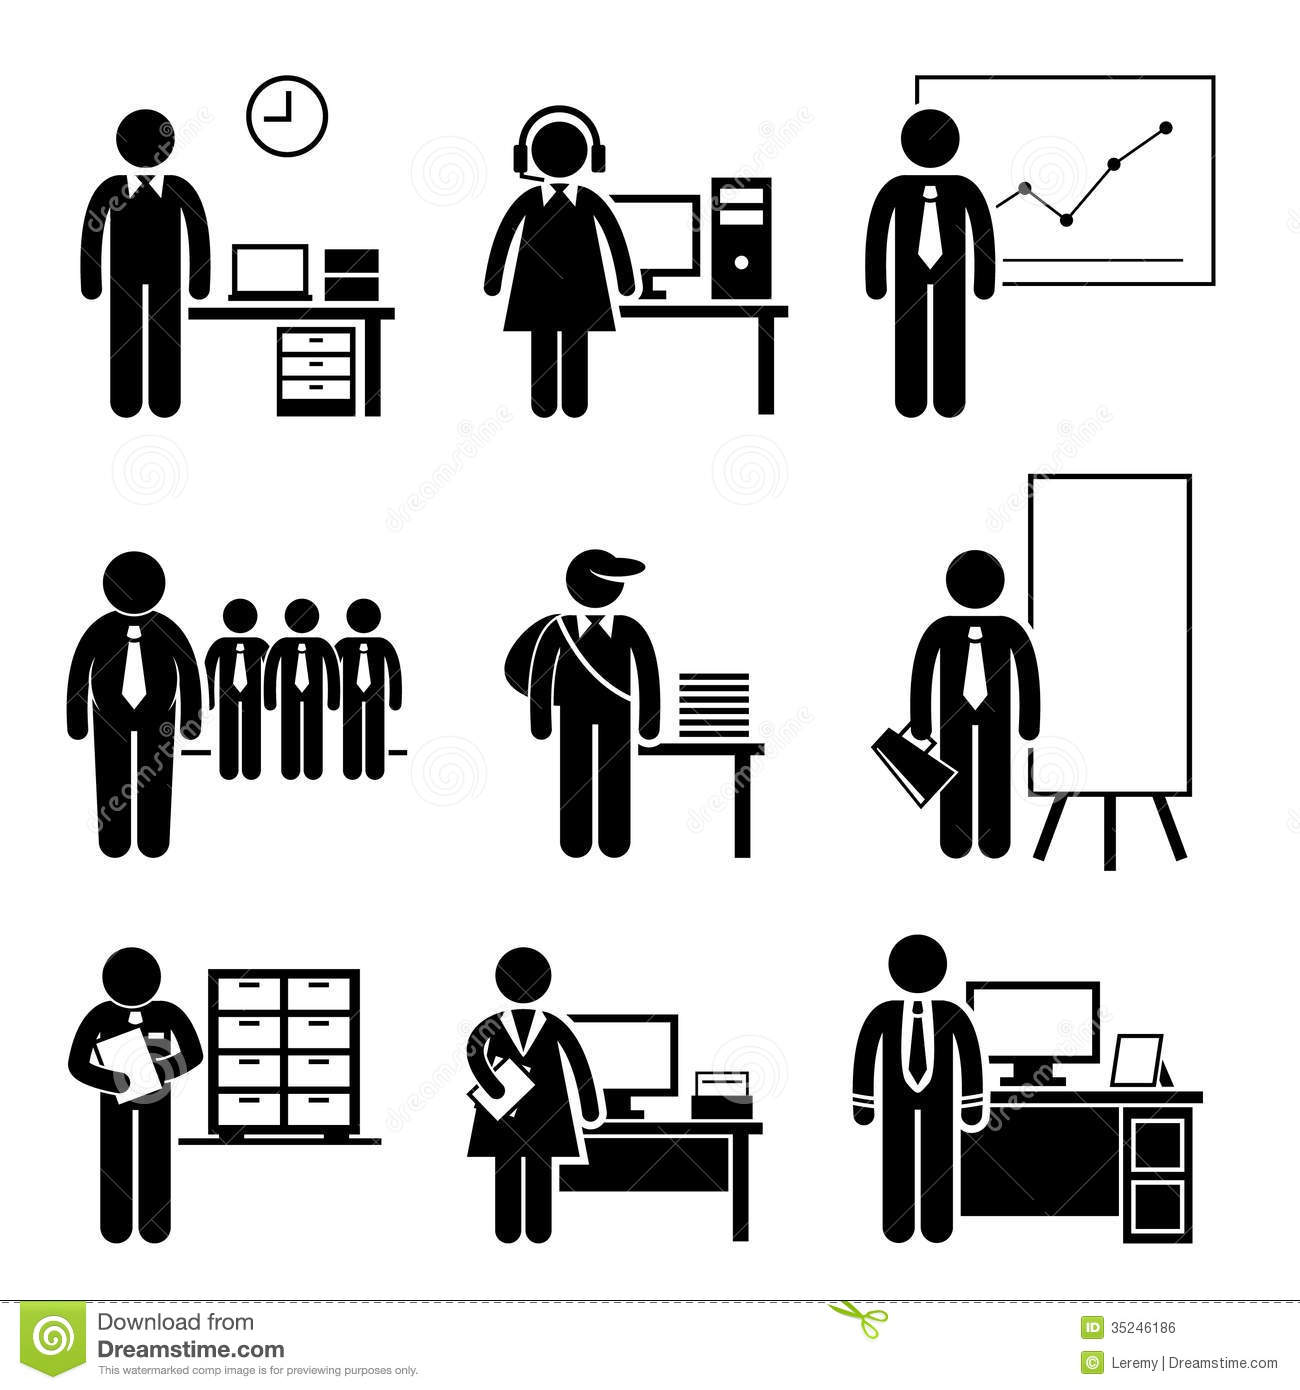 Office Jobs Occupations Careers Royalty Free Stock Image - Image ...